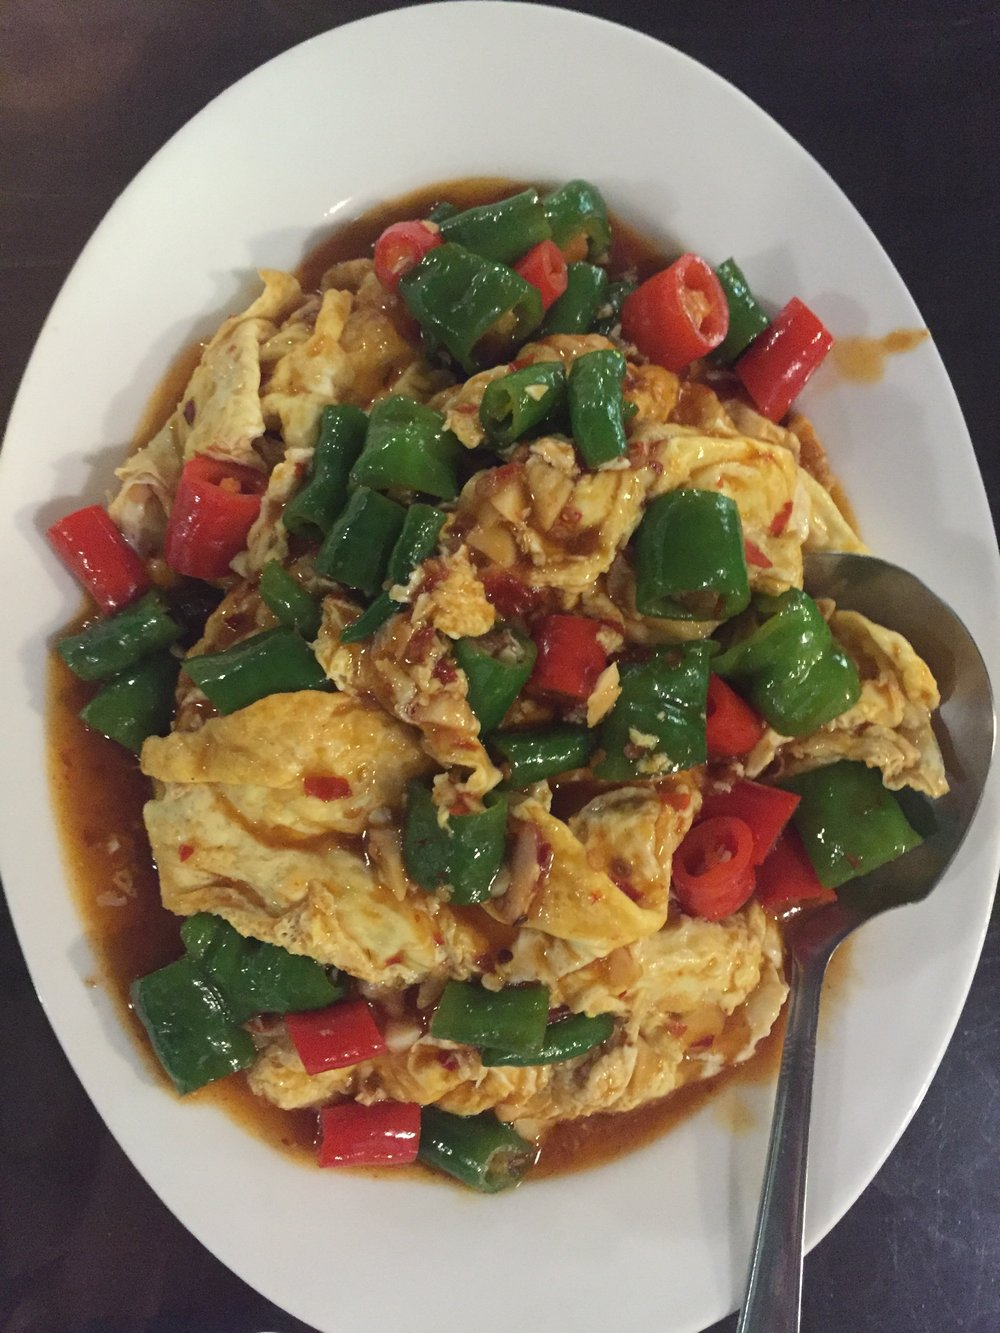 Szechuan-style Eggs and Chilis goes especially well with rice